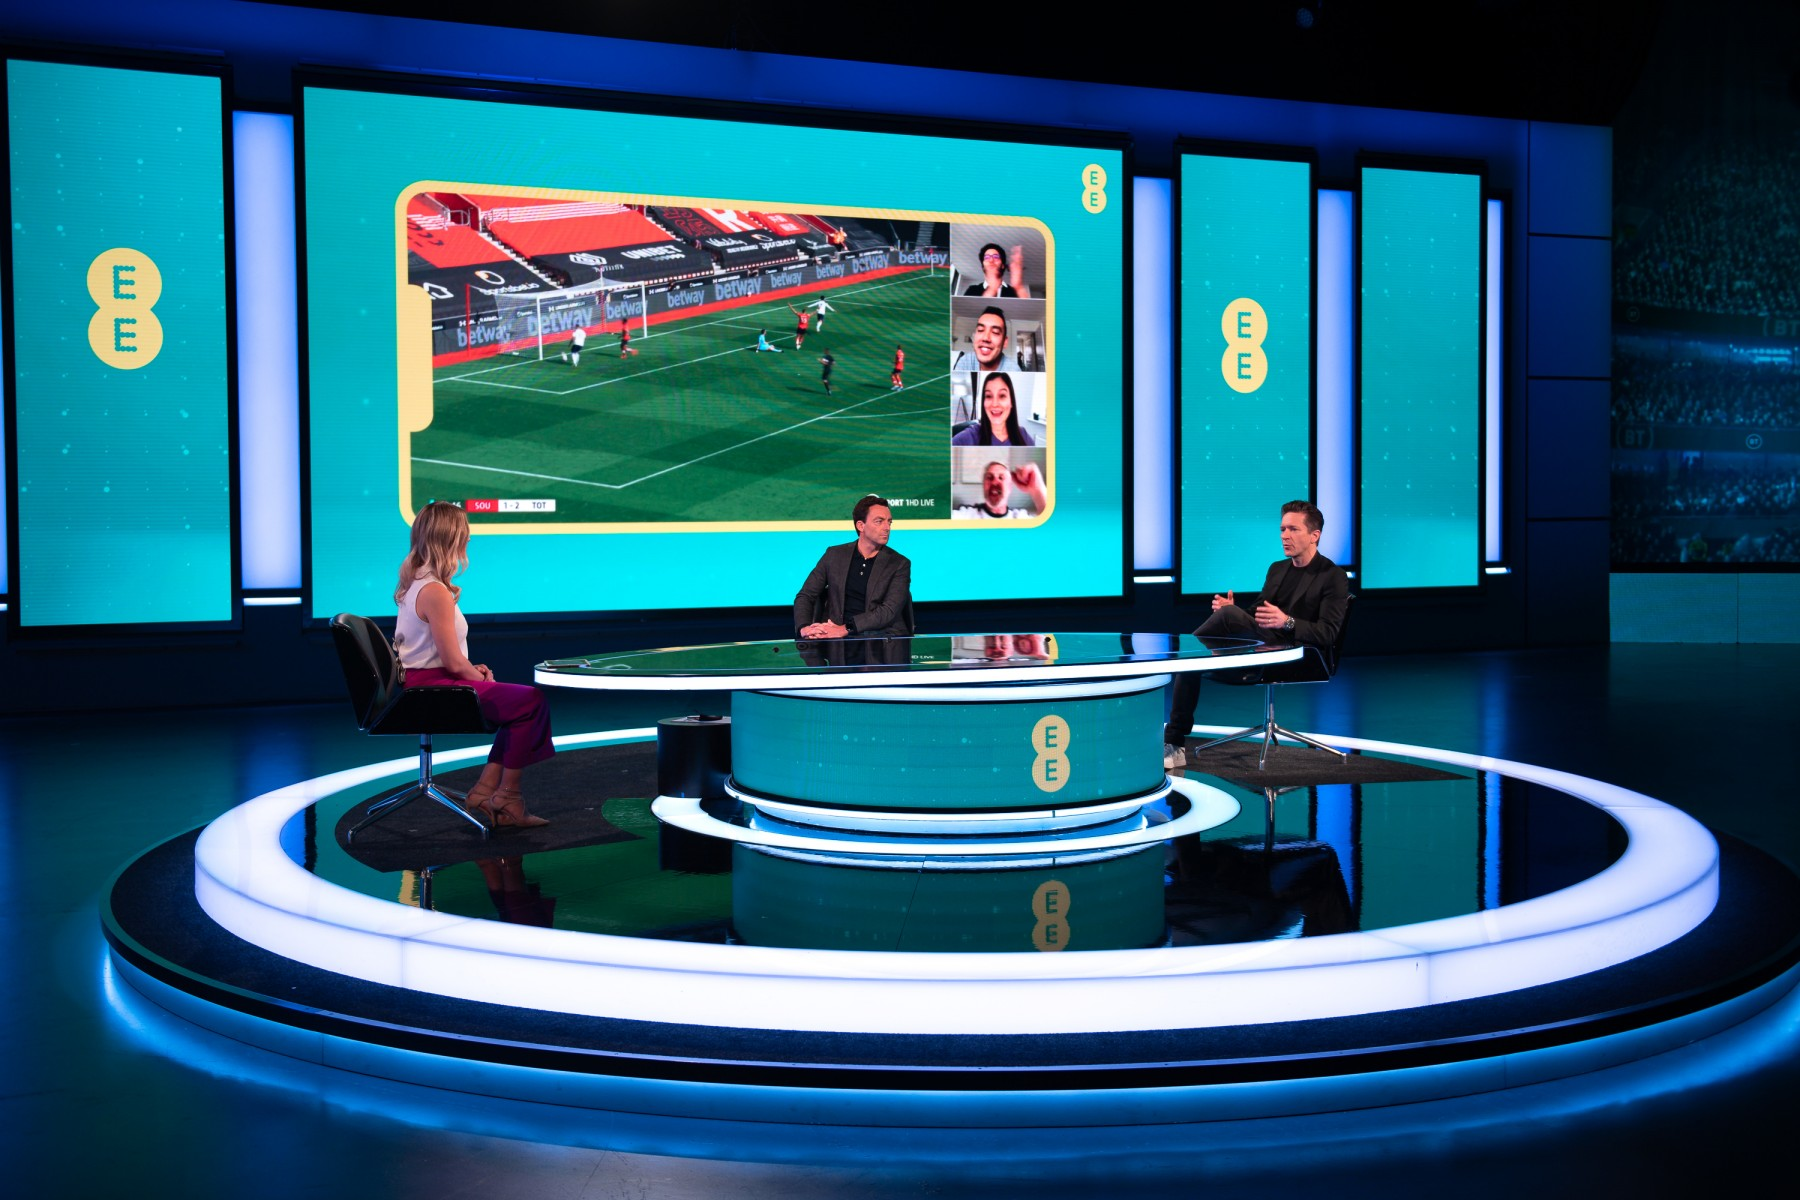 EE unveils new Match Day Experience features